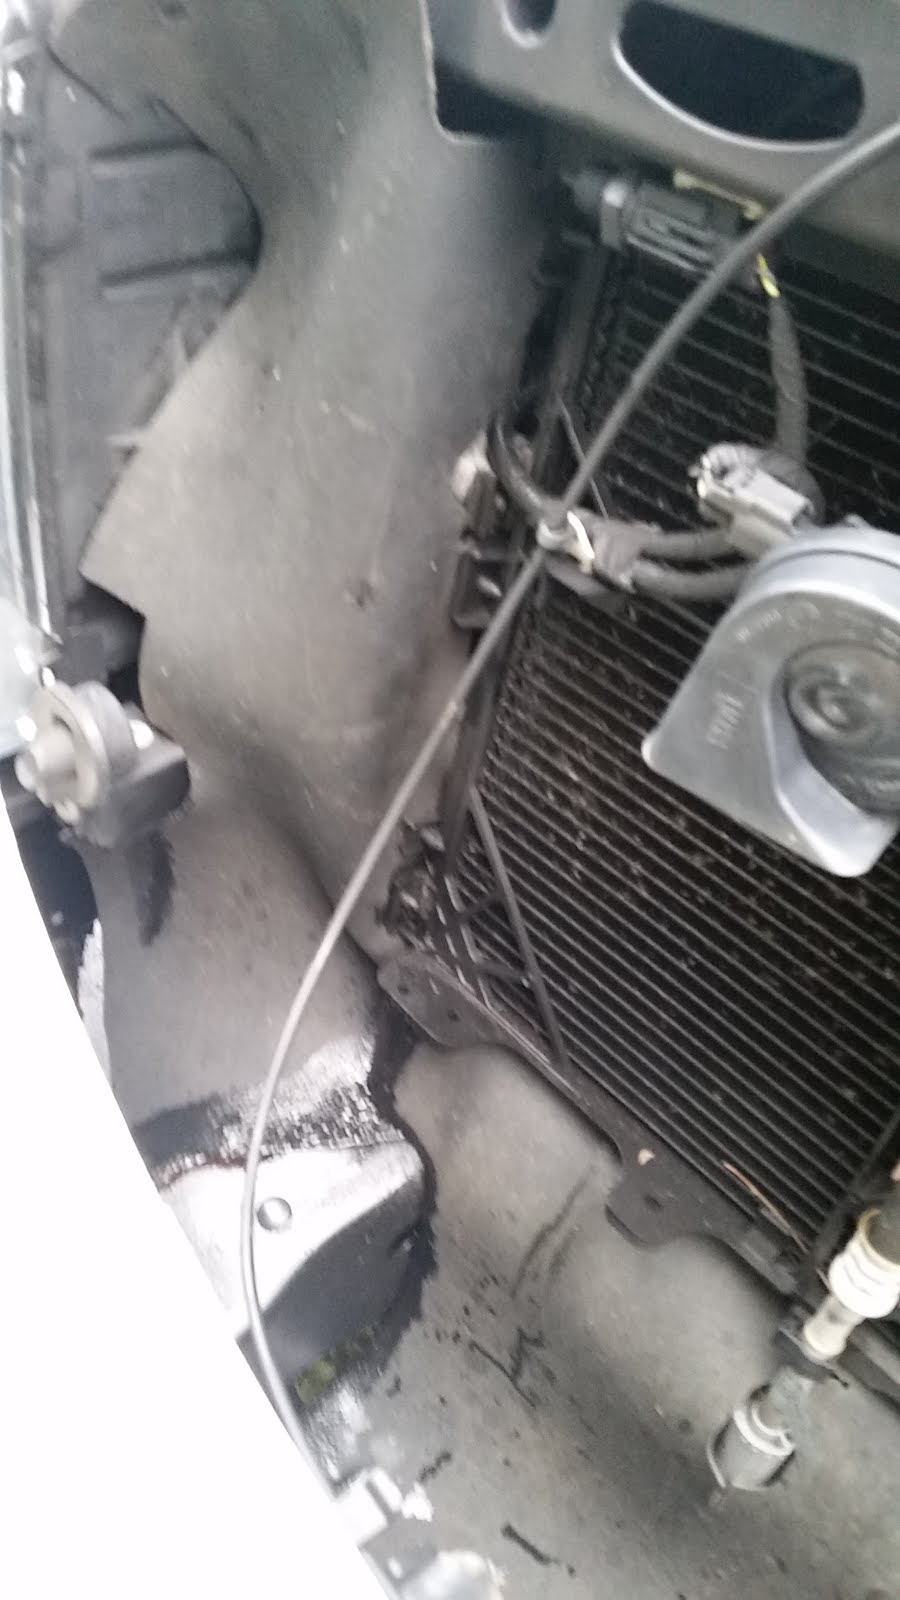 hight resolution of i started experiencing the age old wheezing sound and when i checked under the hood the condenser had splatters of oil on it